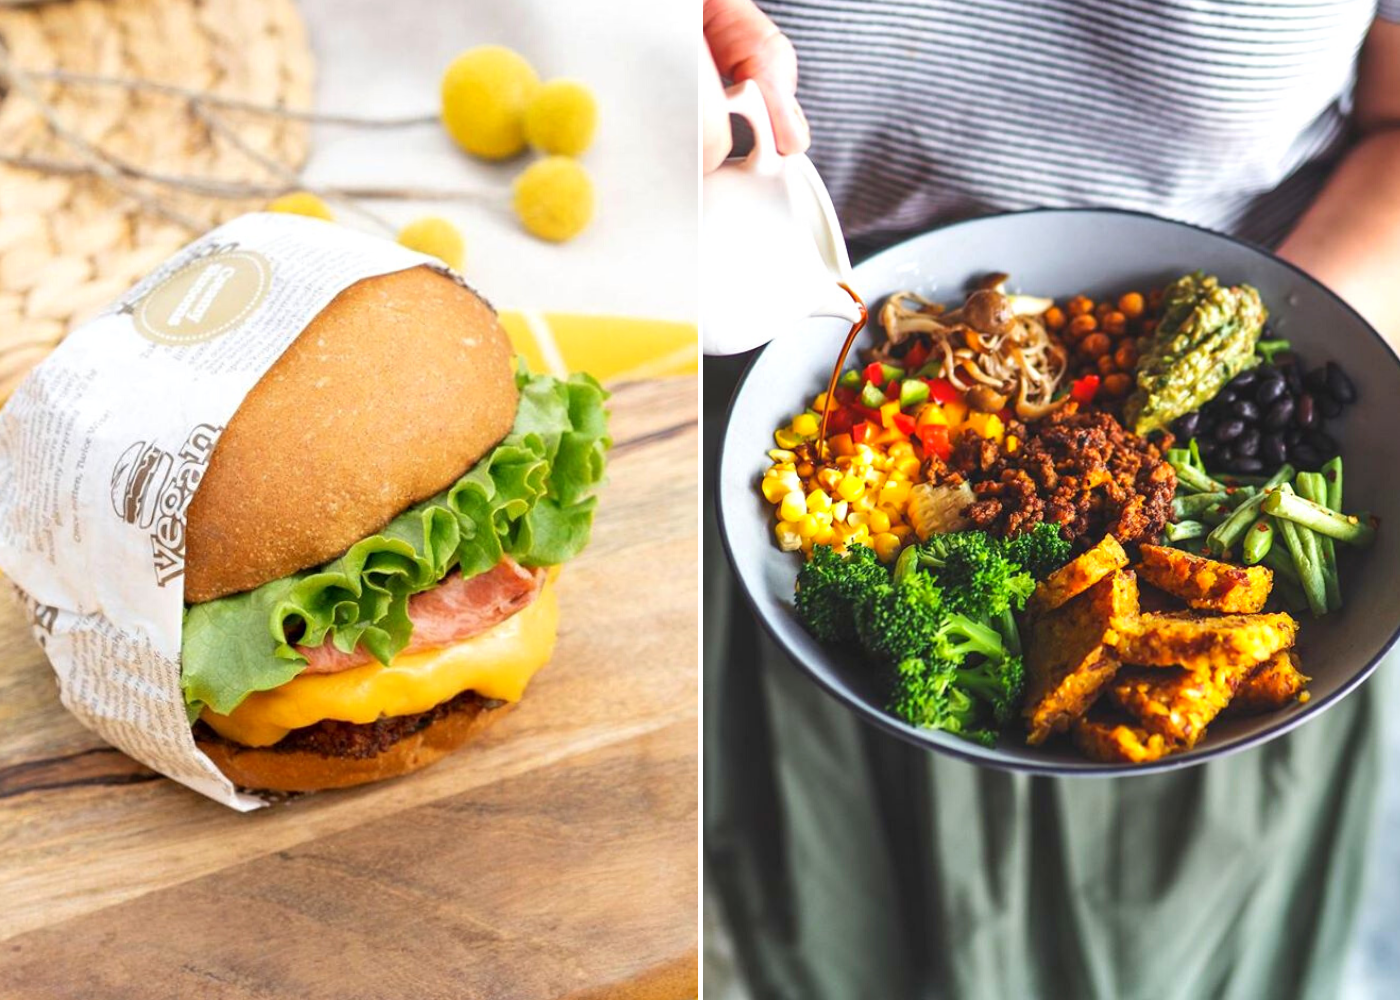 Going for vegan vibes? Dig into these cafés and restaurants for your plant-based eats